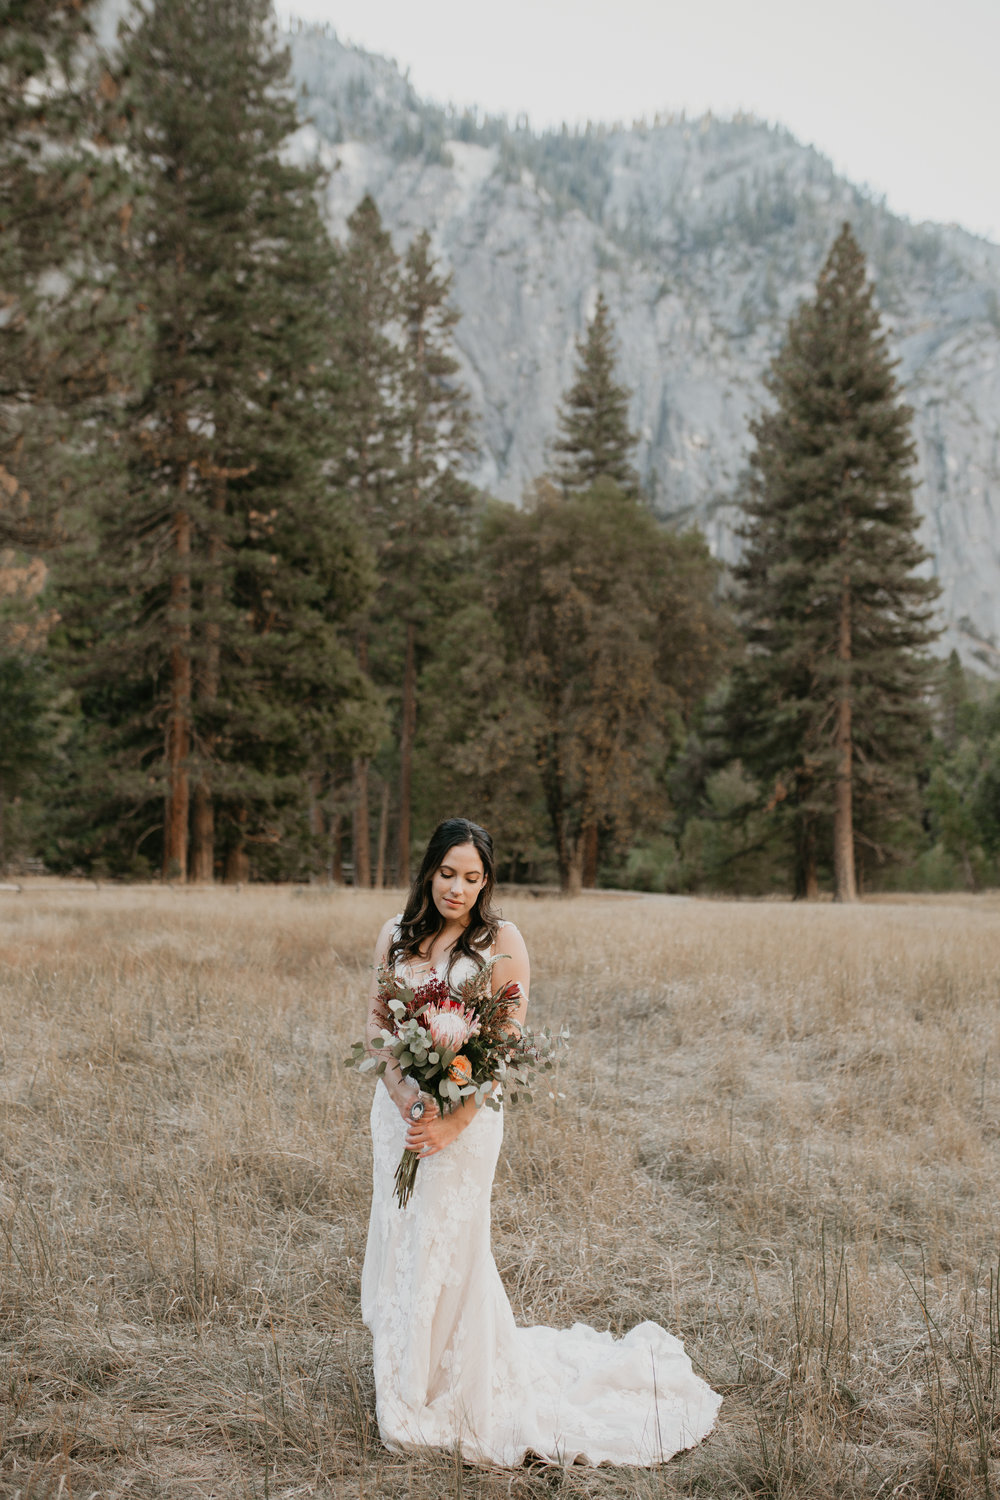 nicole-daacke-photography-intimate-elopement-wedding-yosemite-national-park-california-taft-point-sunset-photos-yosemite-valley-tunnel-view-first-look-sunrise-golden-granite-hiking-adventure-wedding-adventurous-elopement-photographer-31.jpg